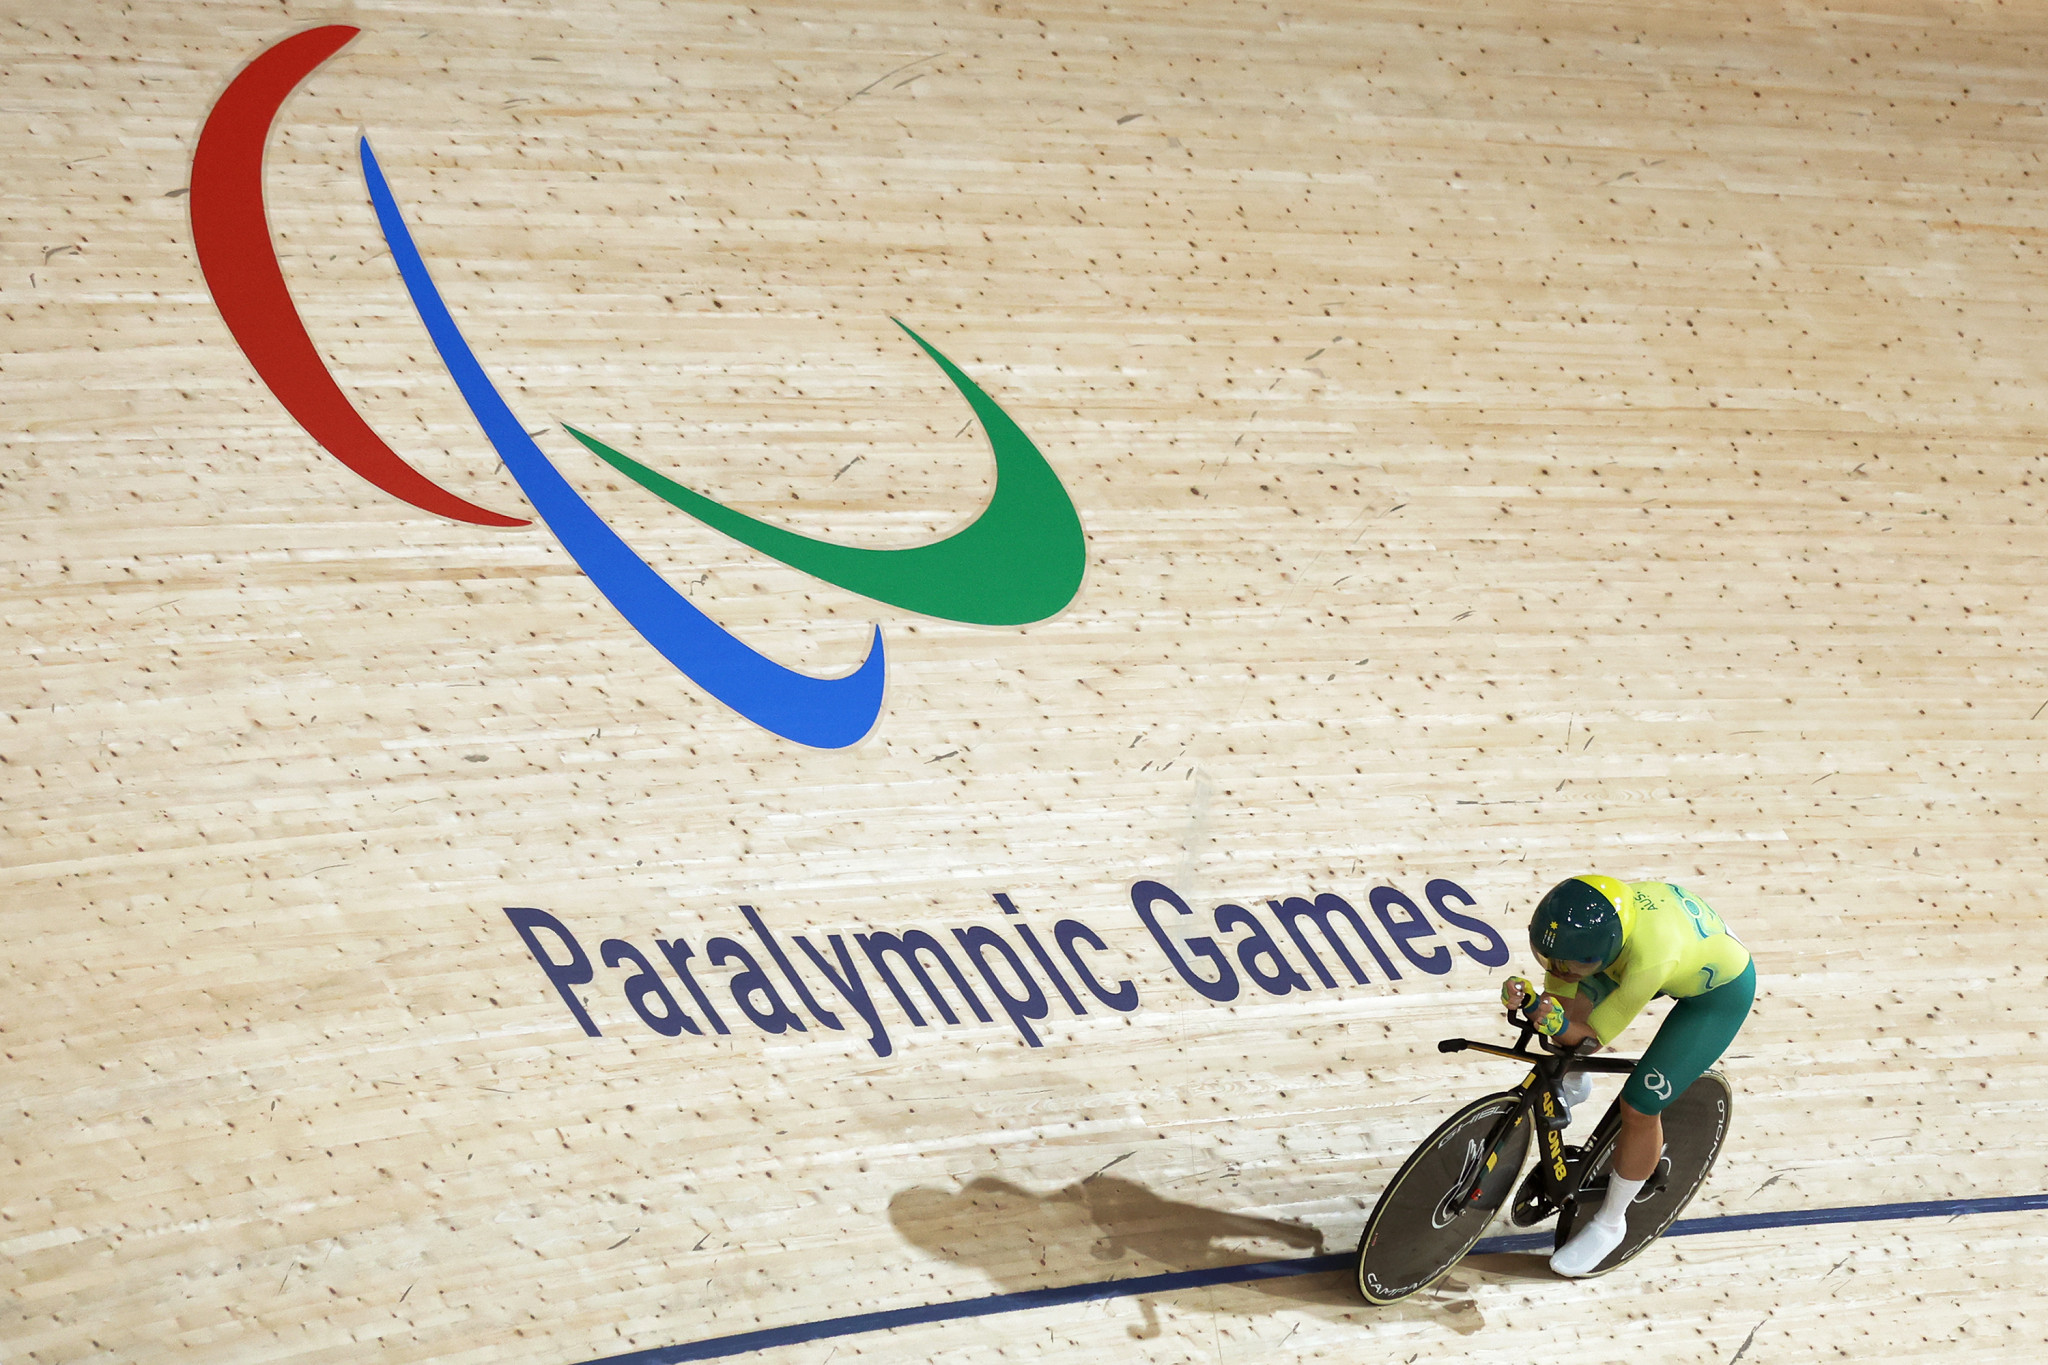 First medals earned as sport begins at Tokyo 2020 Paralympic Games